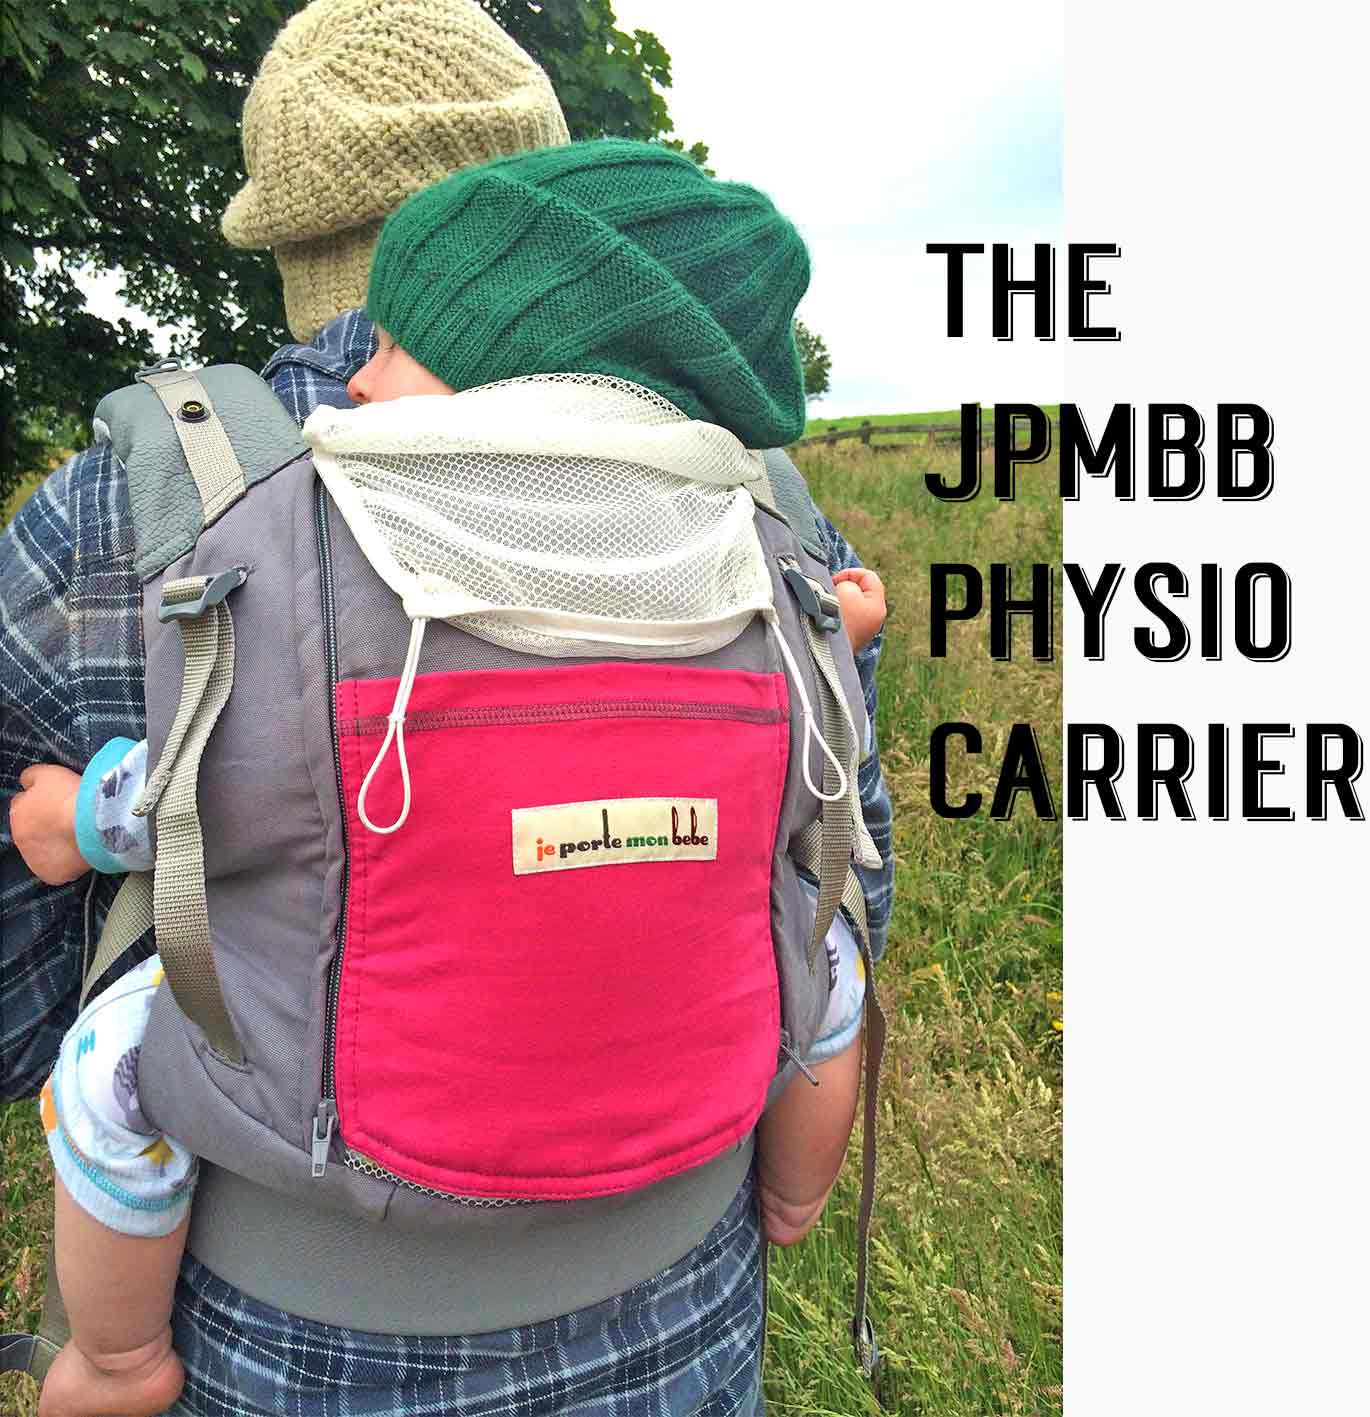 JPMBB PhysioCarrier Review